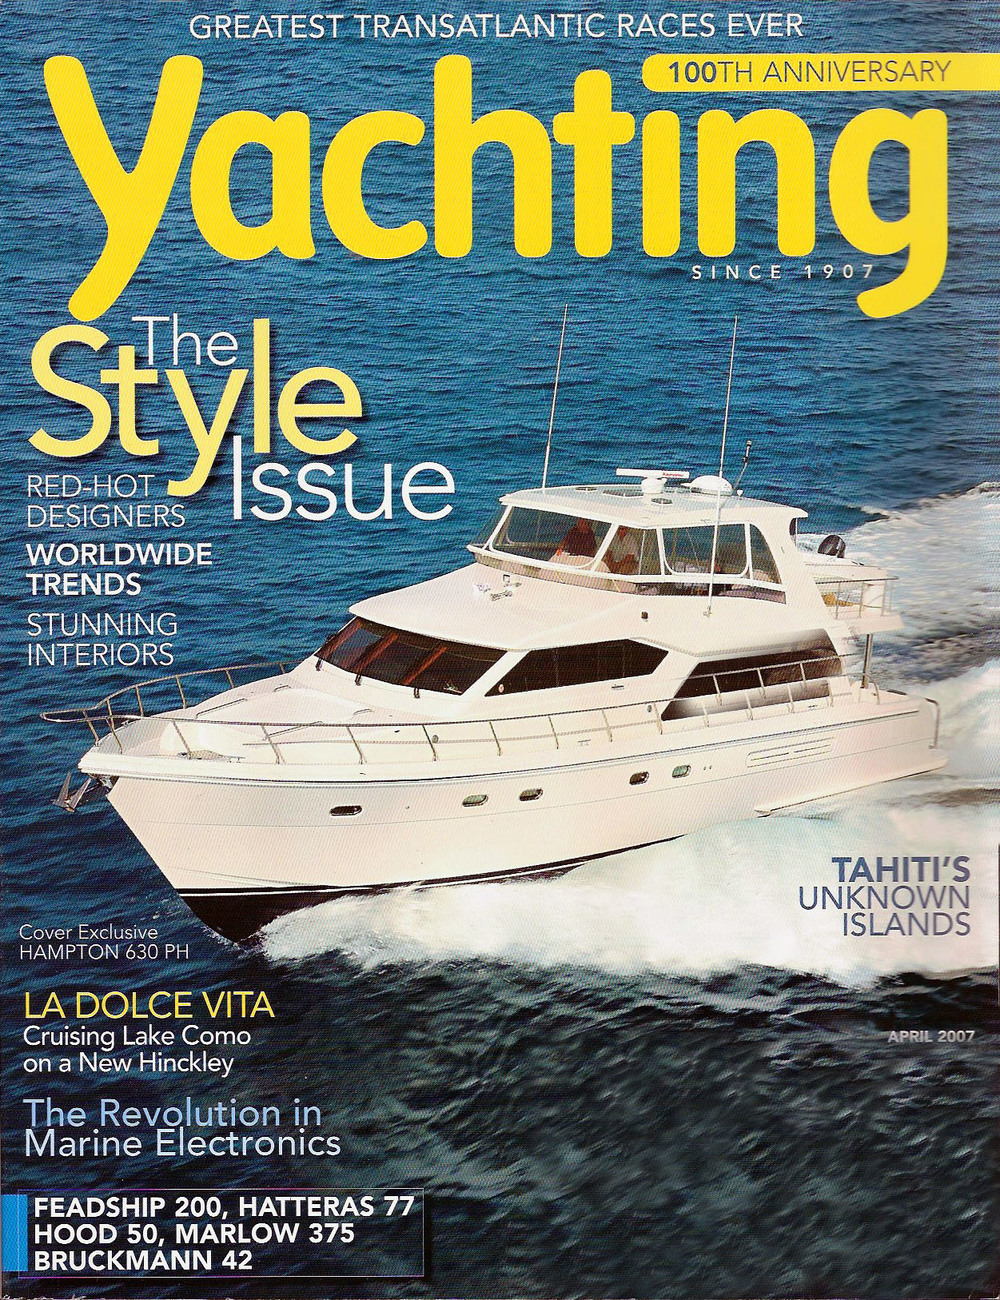 Yachting cover 4-07.large.jpg